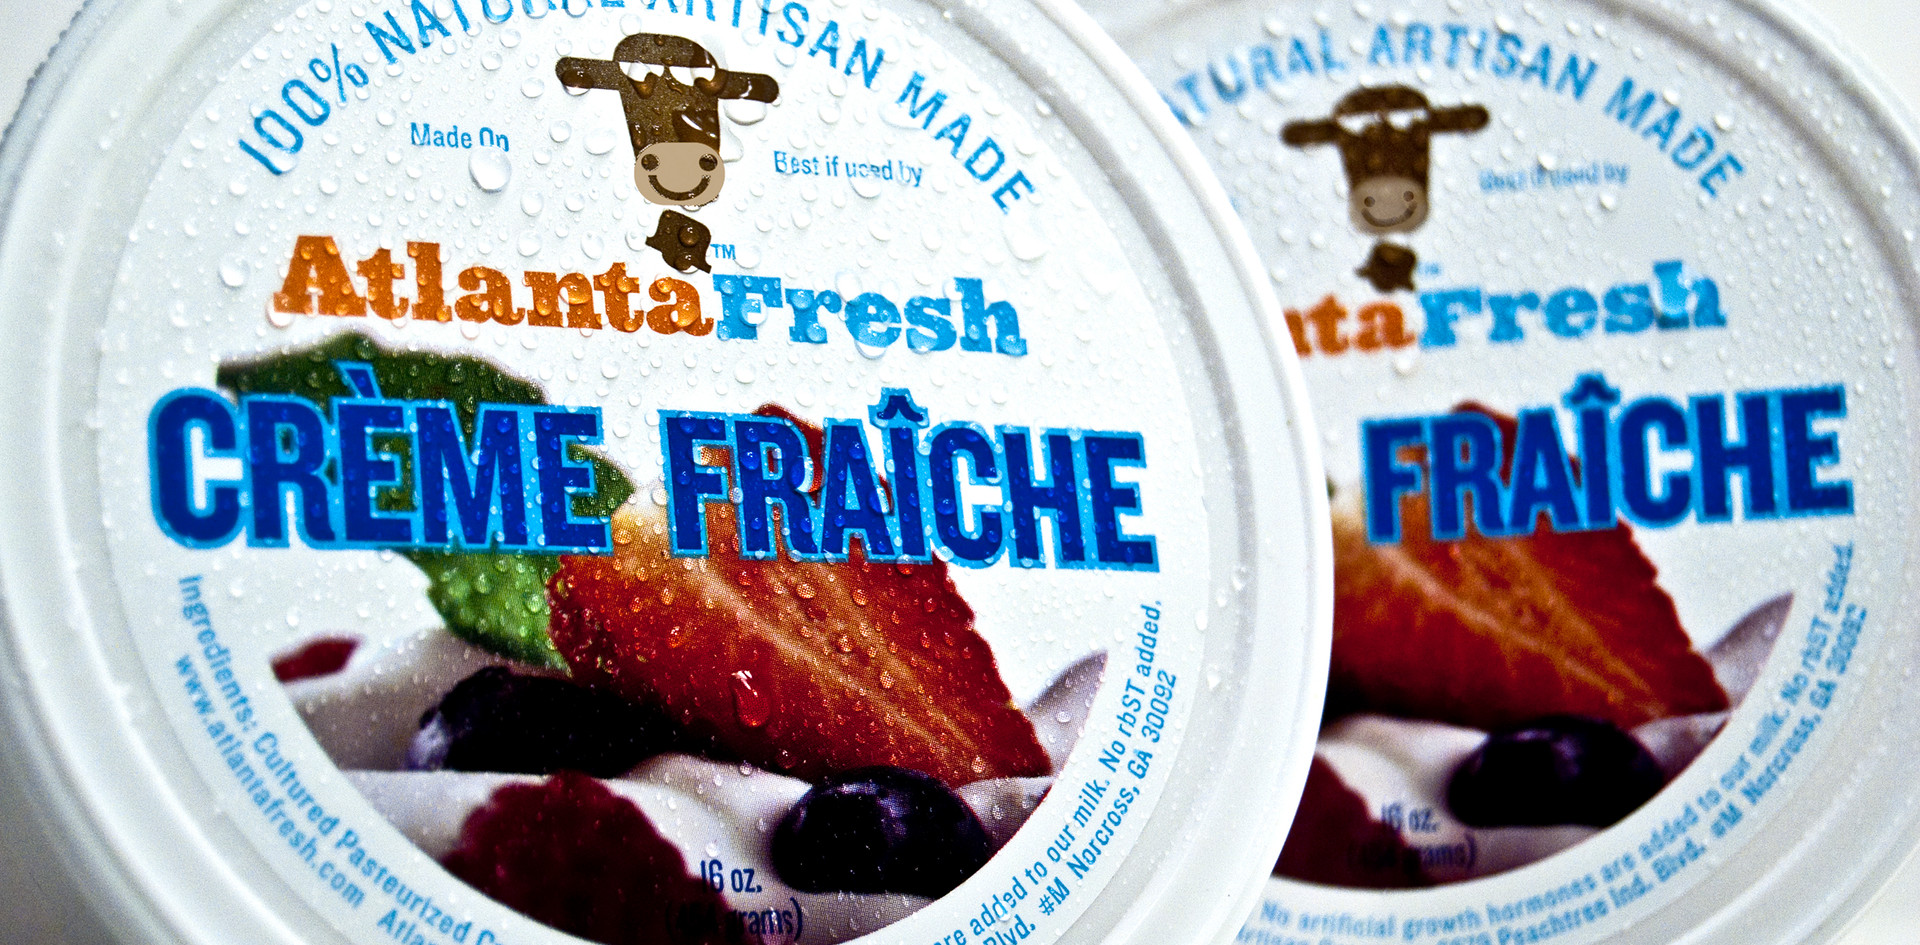 Atlantafresh branding applied to other product lines